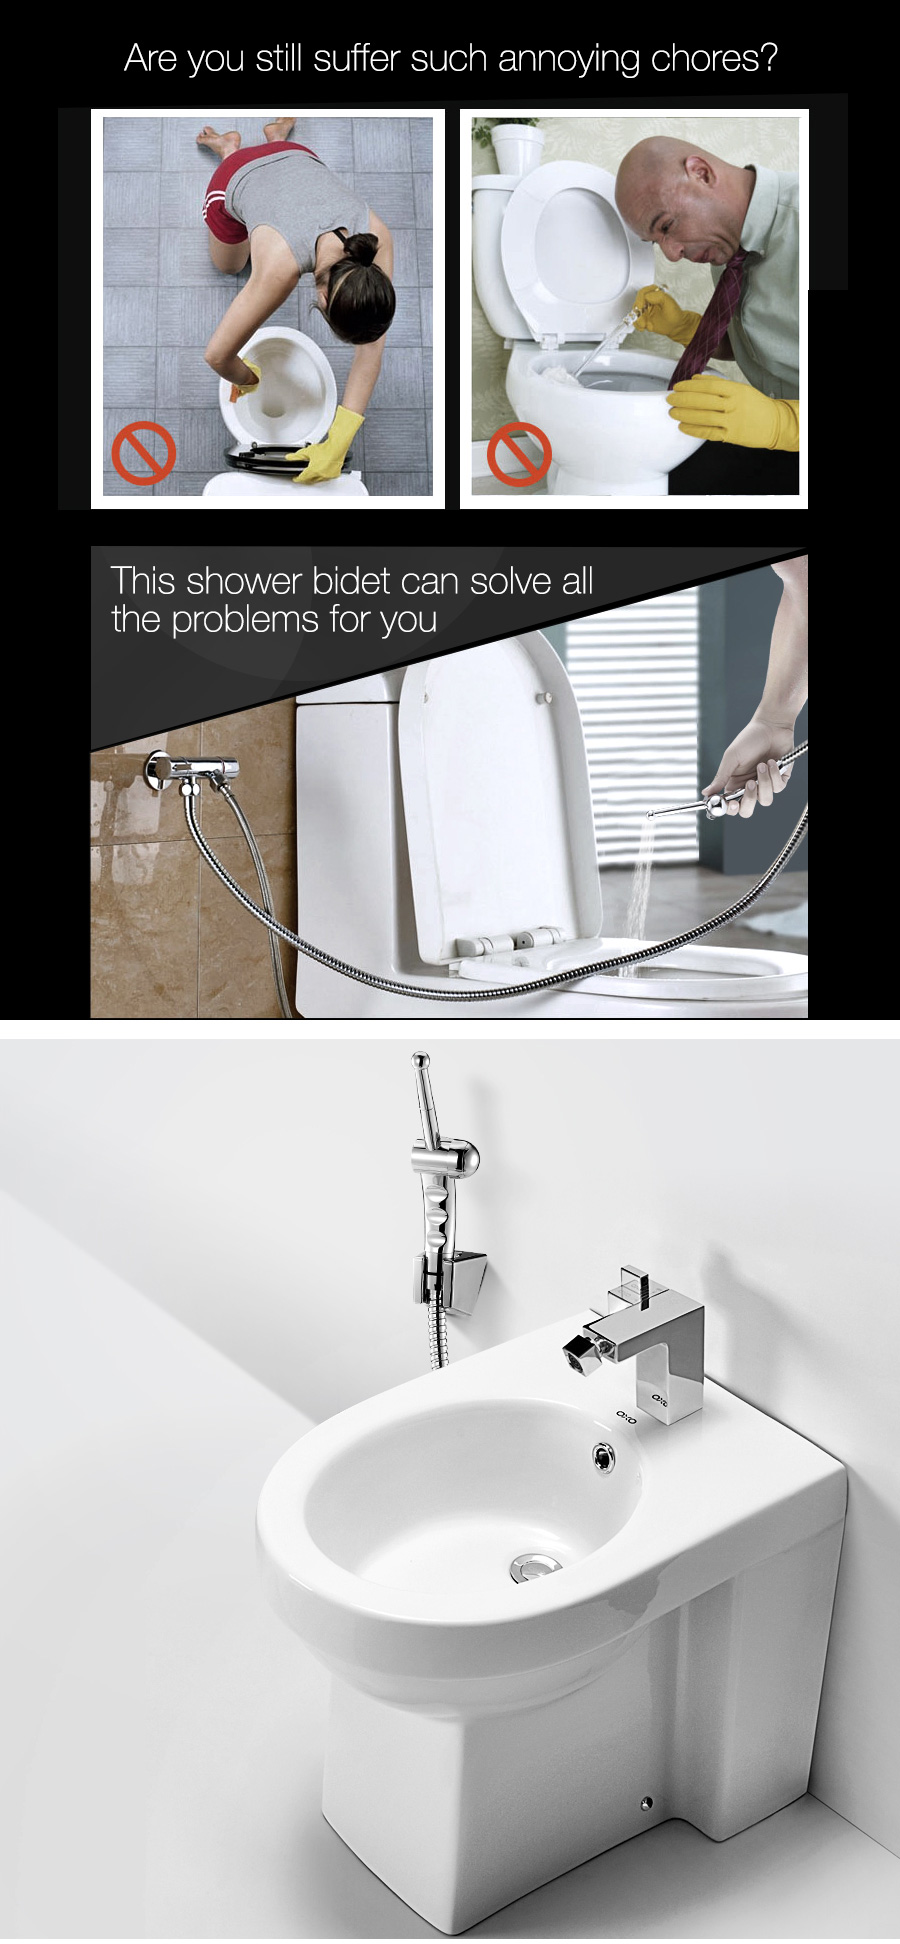 kcasa hand held bidet shower toilet sprayer with double control three way angle water valve at. Black Bedroom Furniture Sets. Home Design Ideas